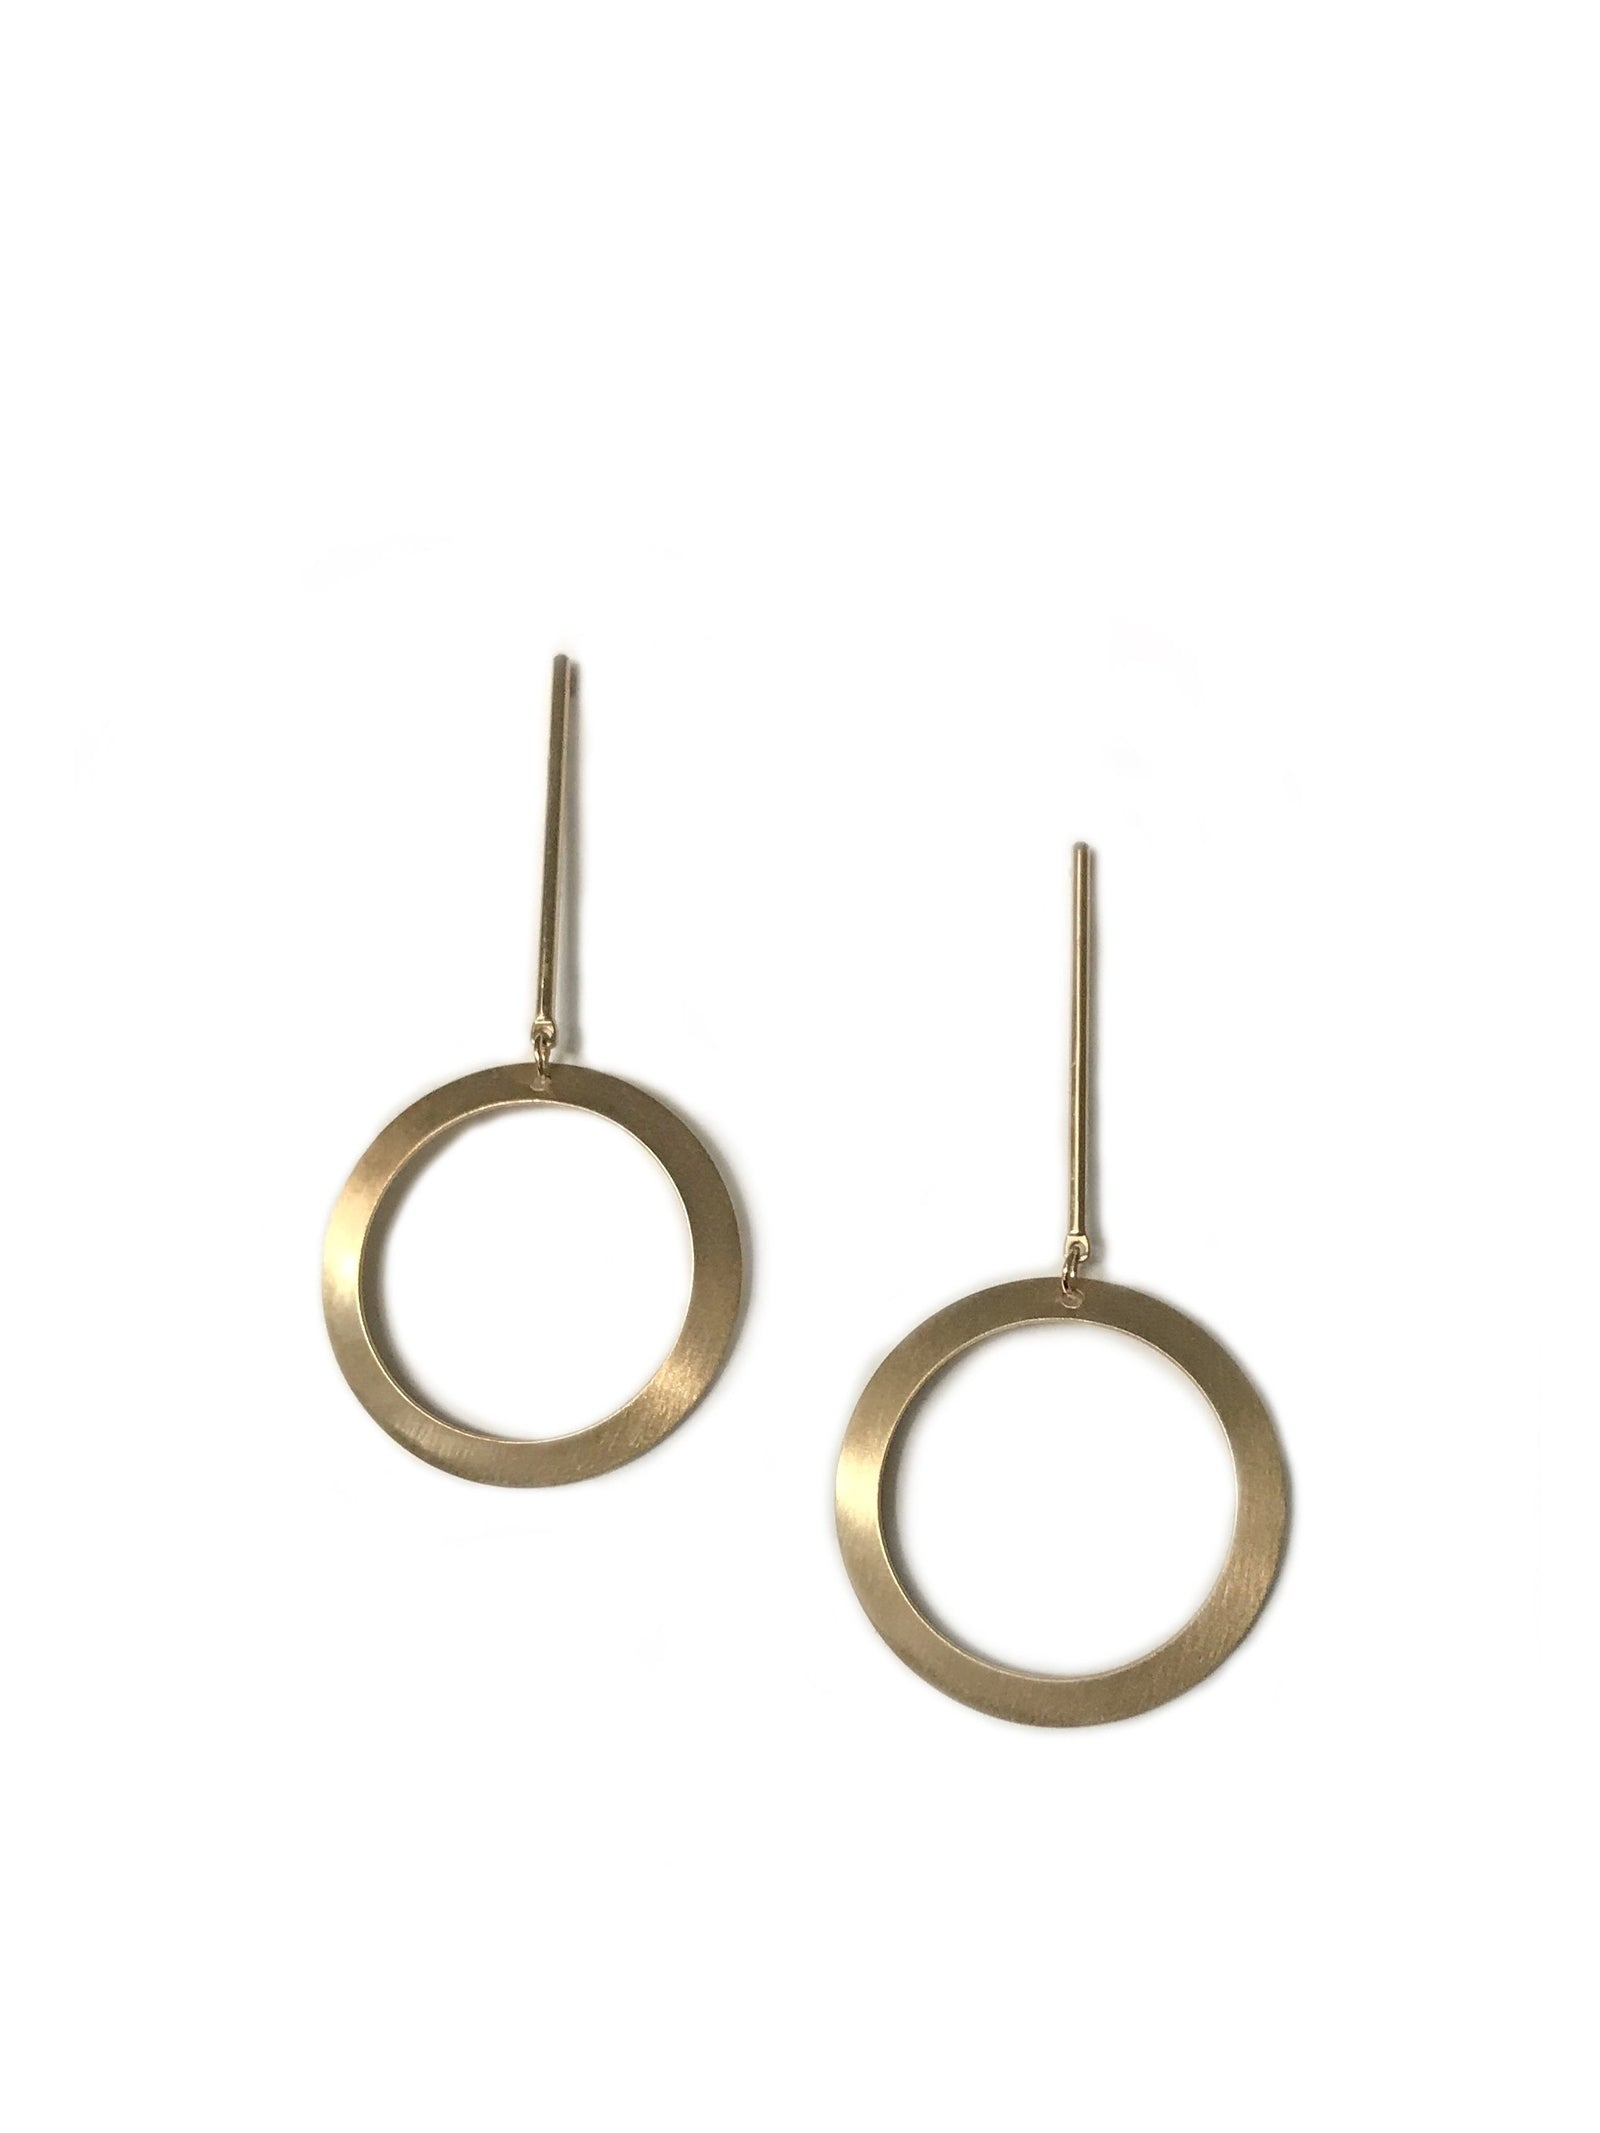 La Brea Earrings